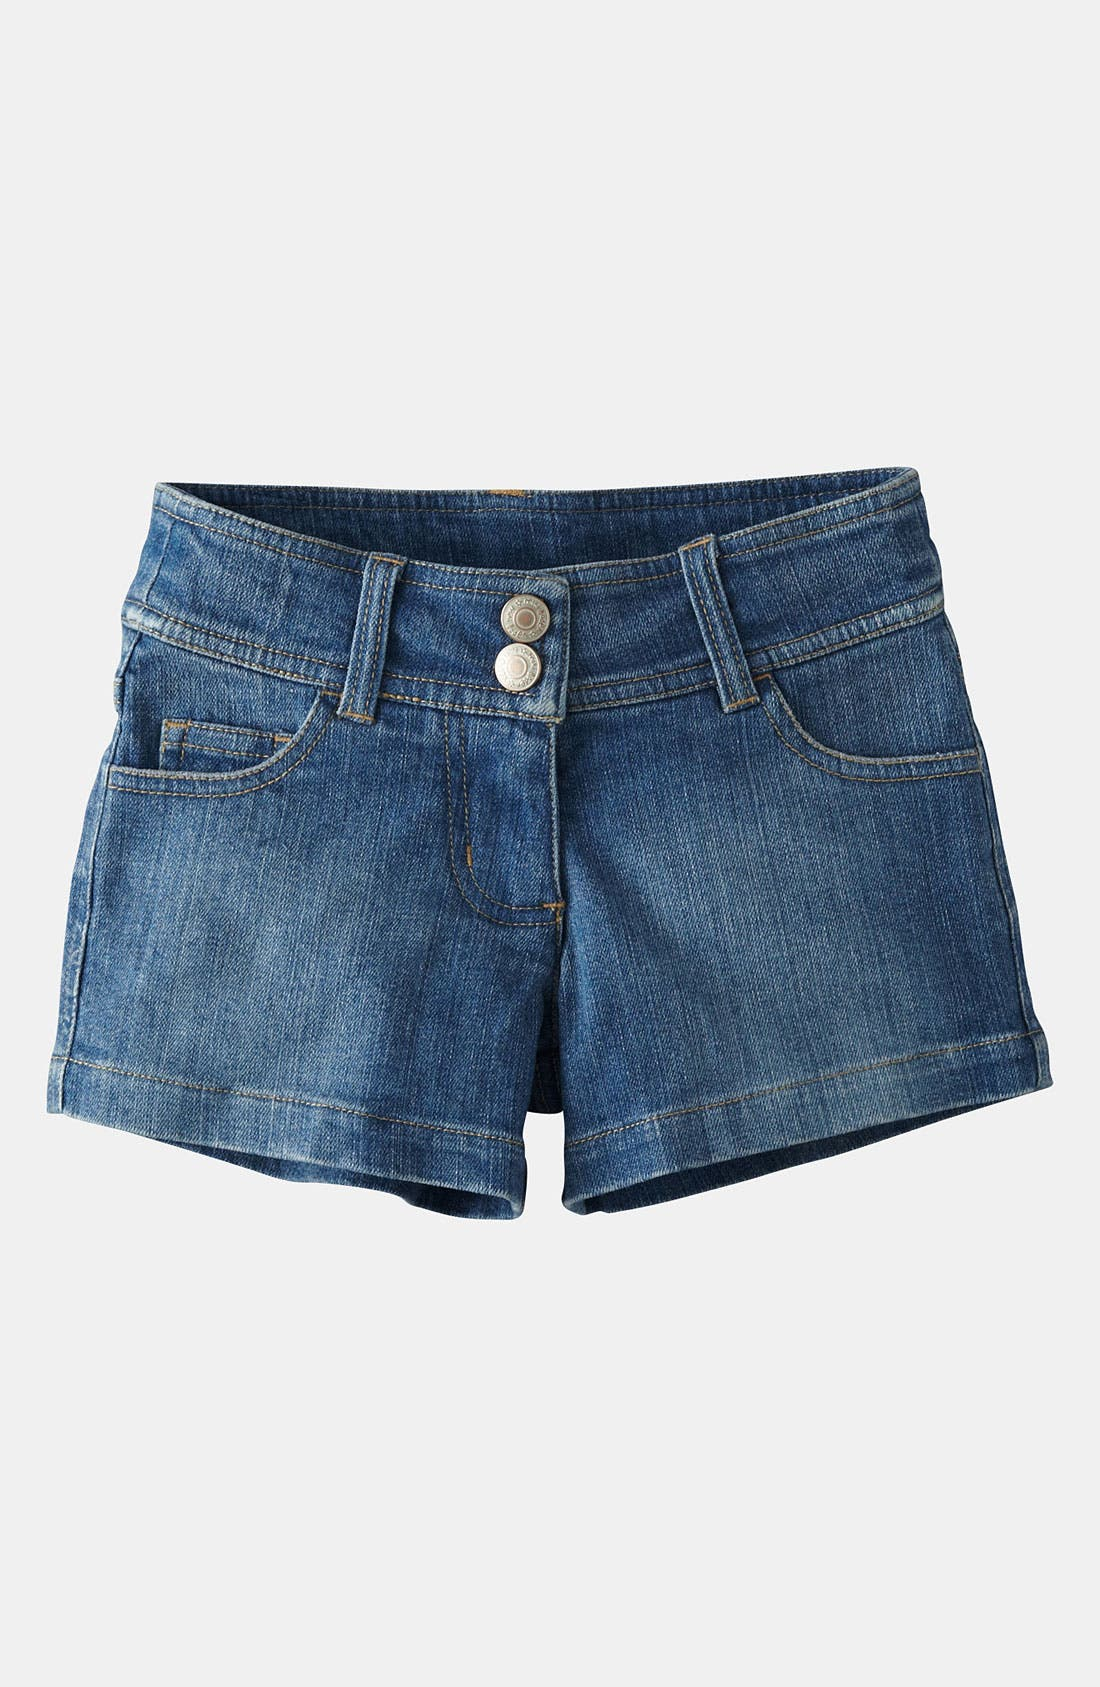 Alternate Image 1 Selected - Mini Boden 'Heart Pocket' Denim Shorts (Toddler, Little Girls & Big Girls)